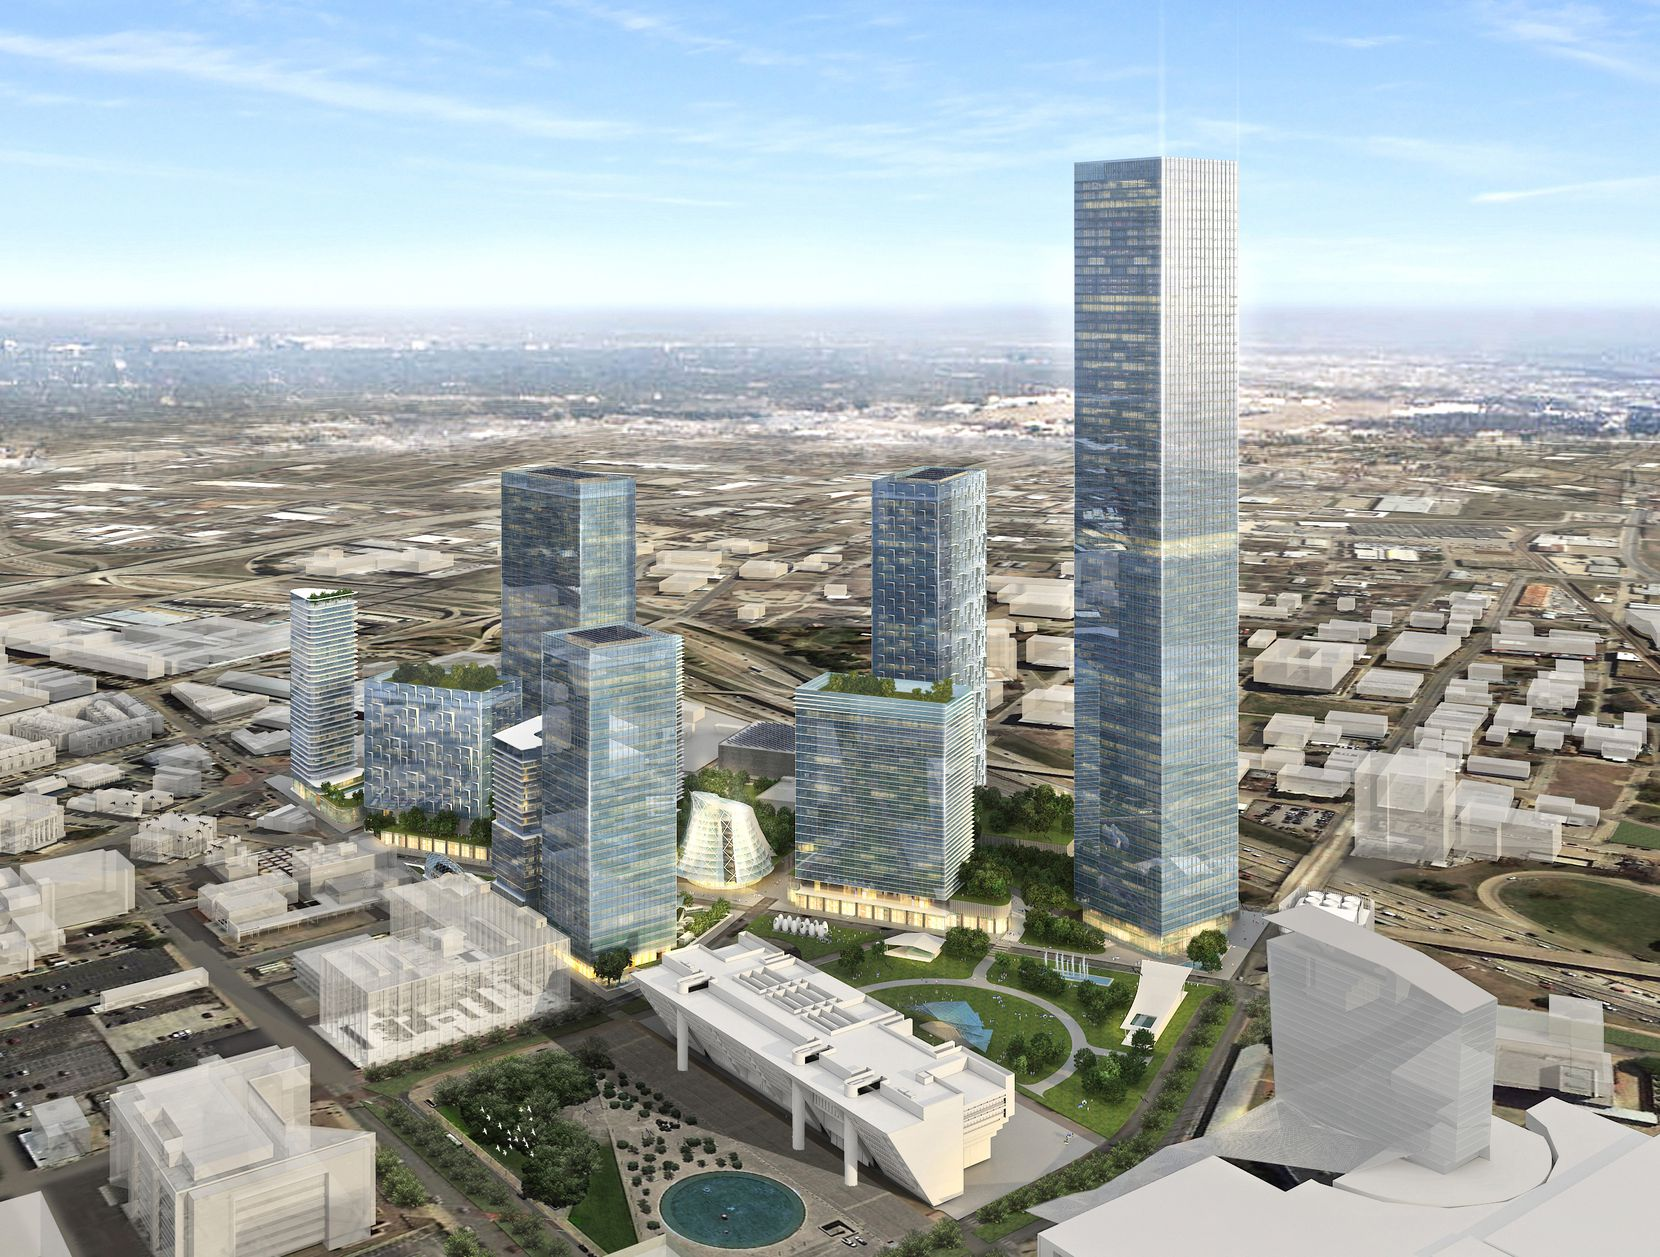 The largest building in the Dallas Smart District would be a 78-story skyscraper that would be the tallest in Dallas.